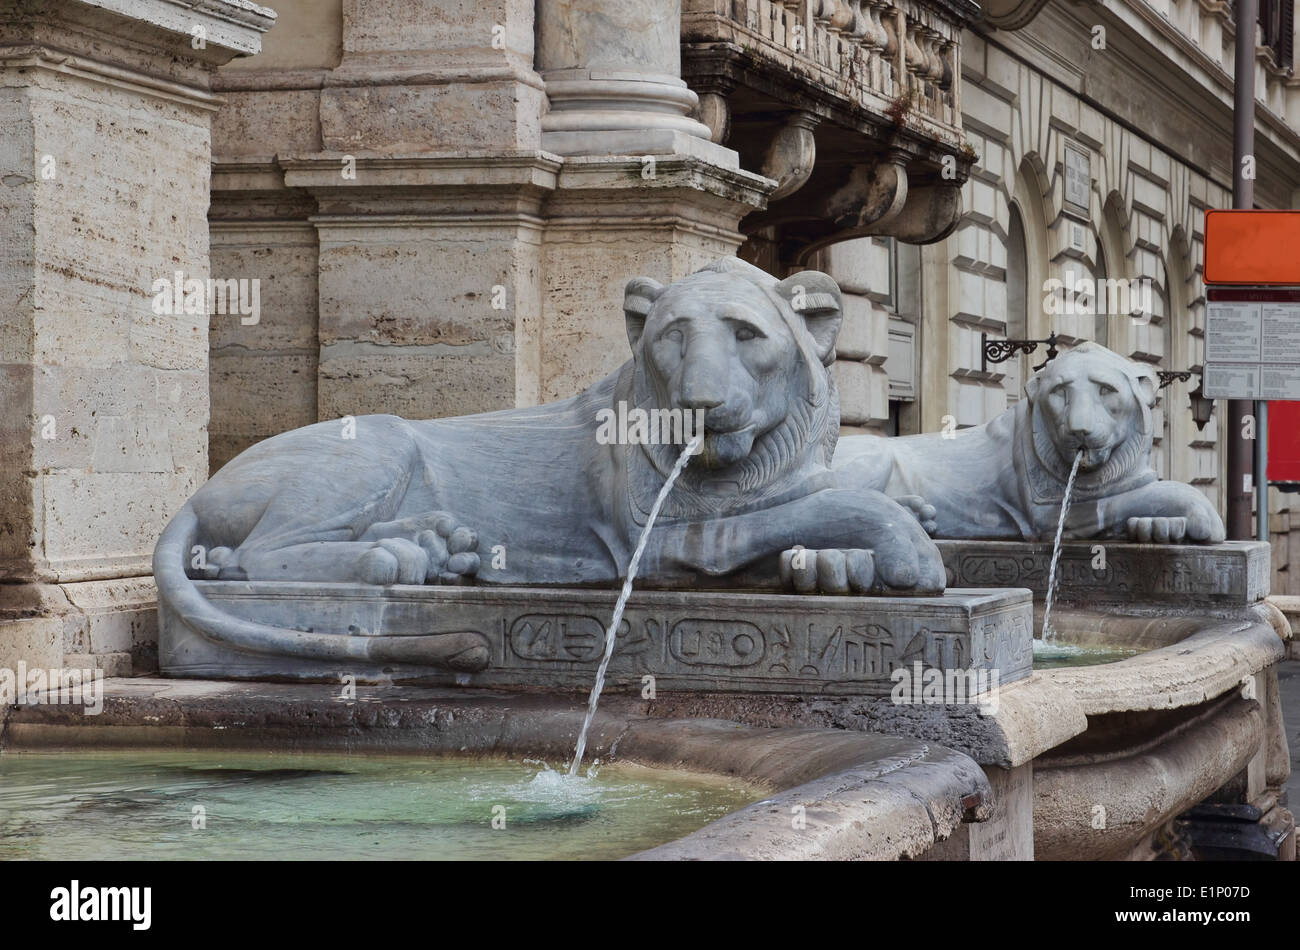 the Fontana dell'Acqua Felice, also called the Fountain of Moses, detail of the lions - Stock Image